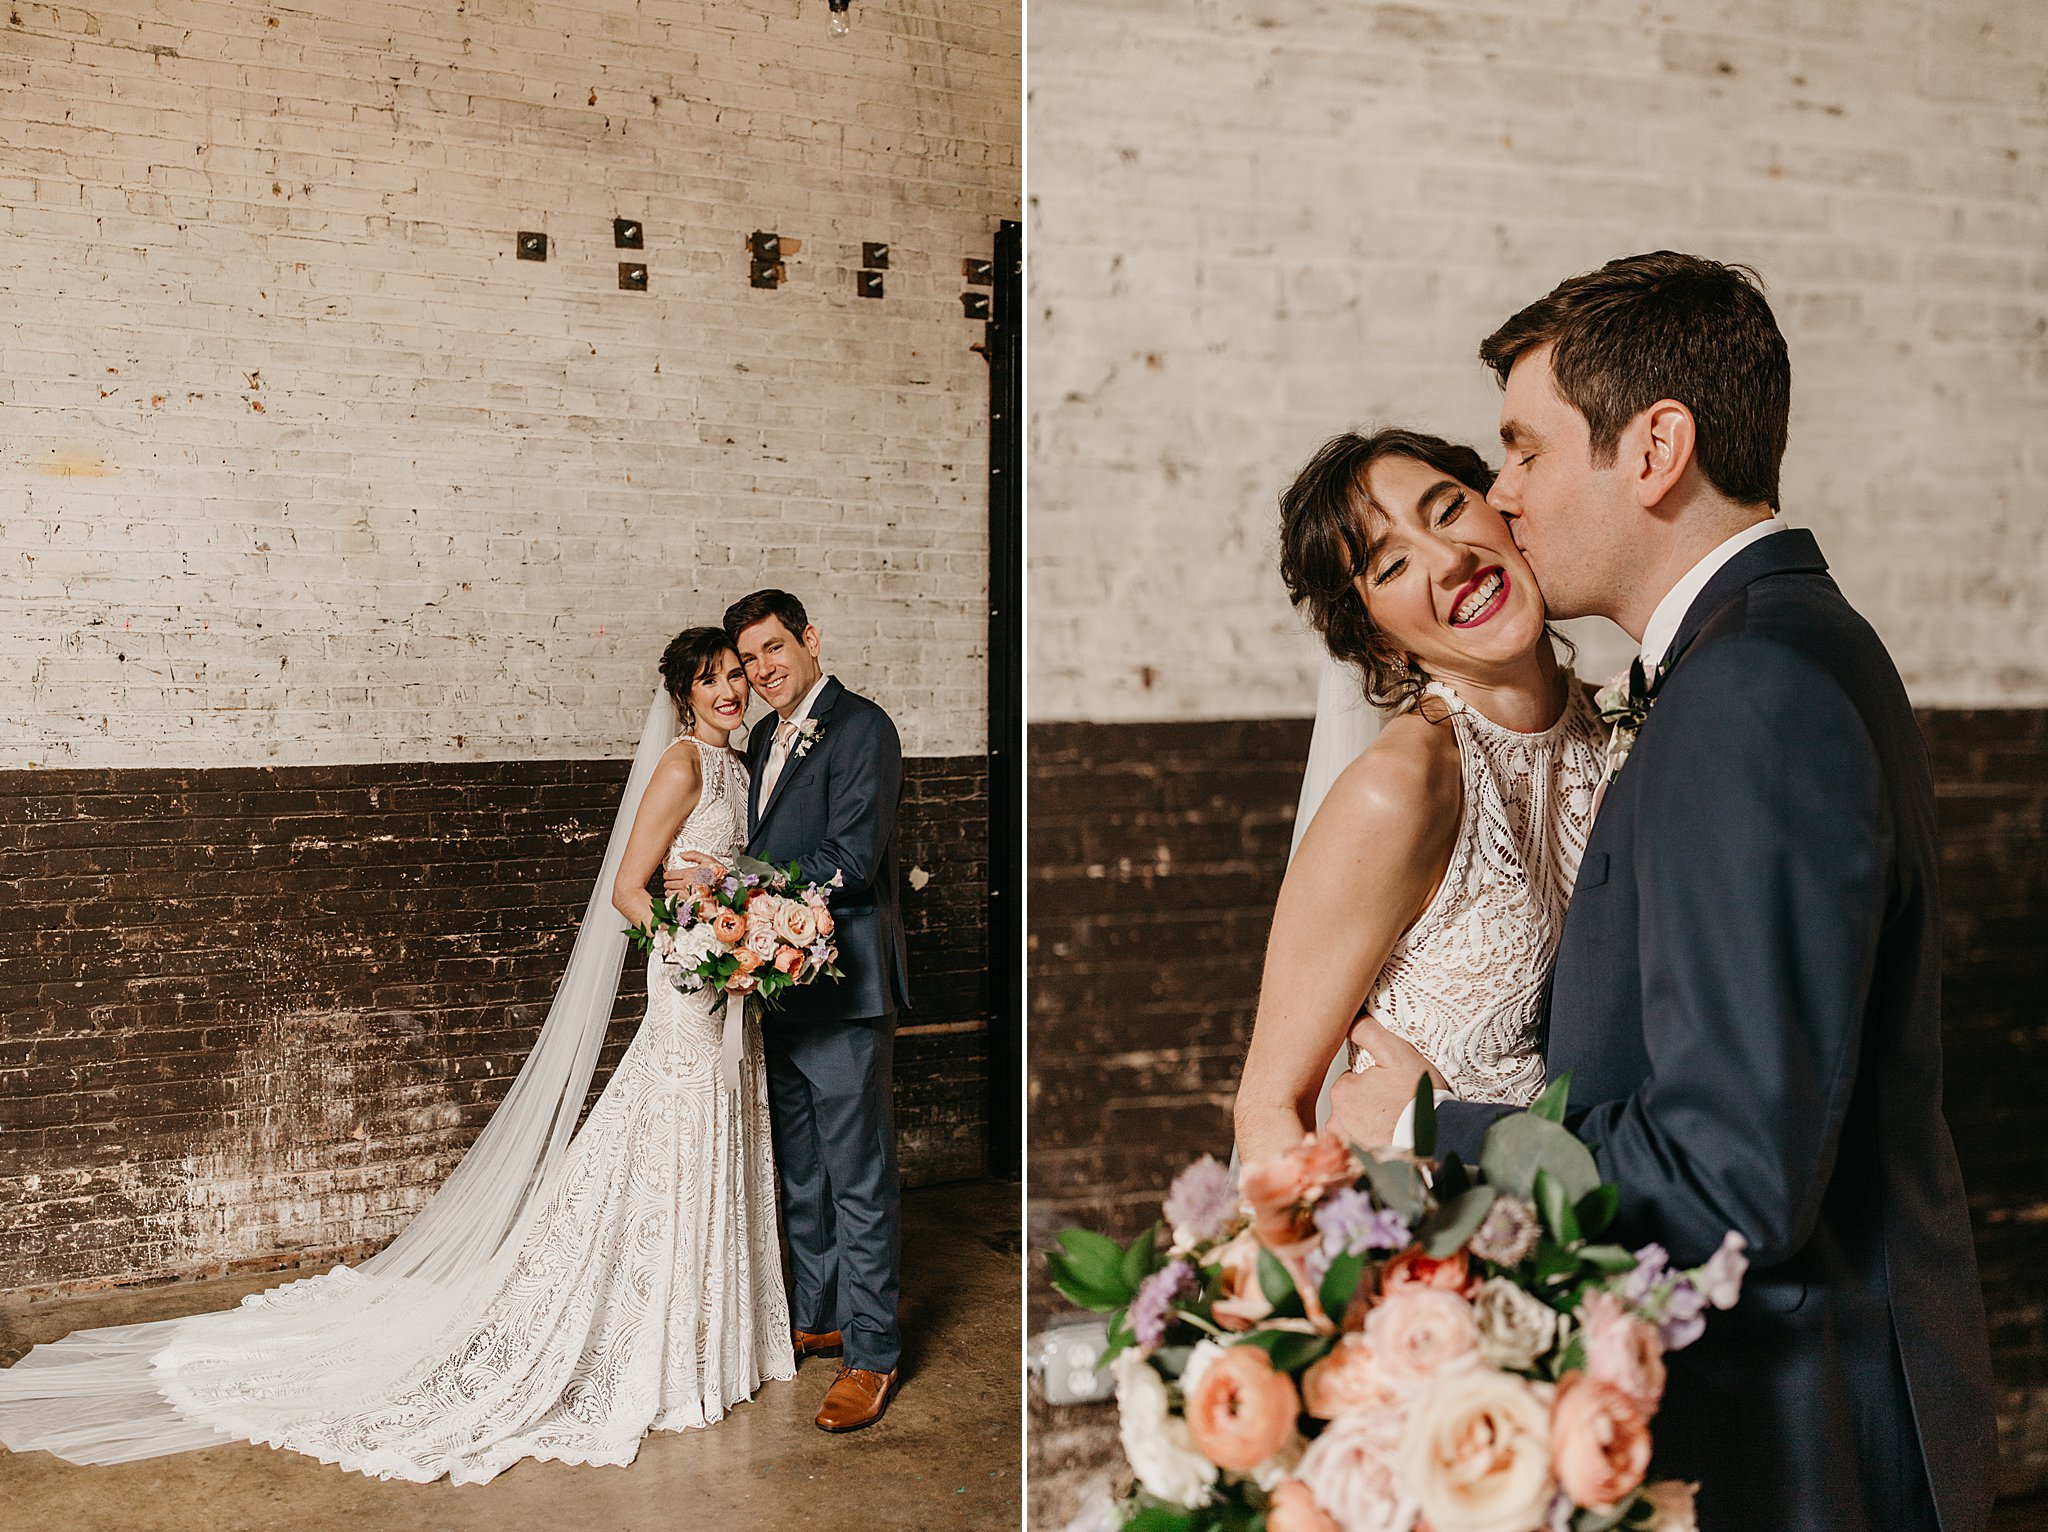 Wilderlove Co_Wedding Photographer_Industrial Wedding_Jewish Wedding_Dallas Texas Wedding_Brake & Clutch Warehouse_North Texas Photographer_0022.jpg